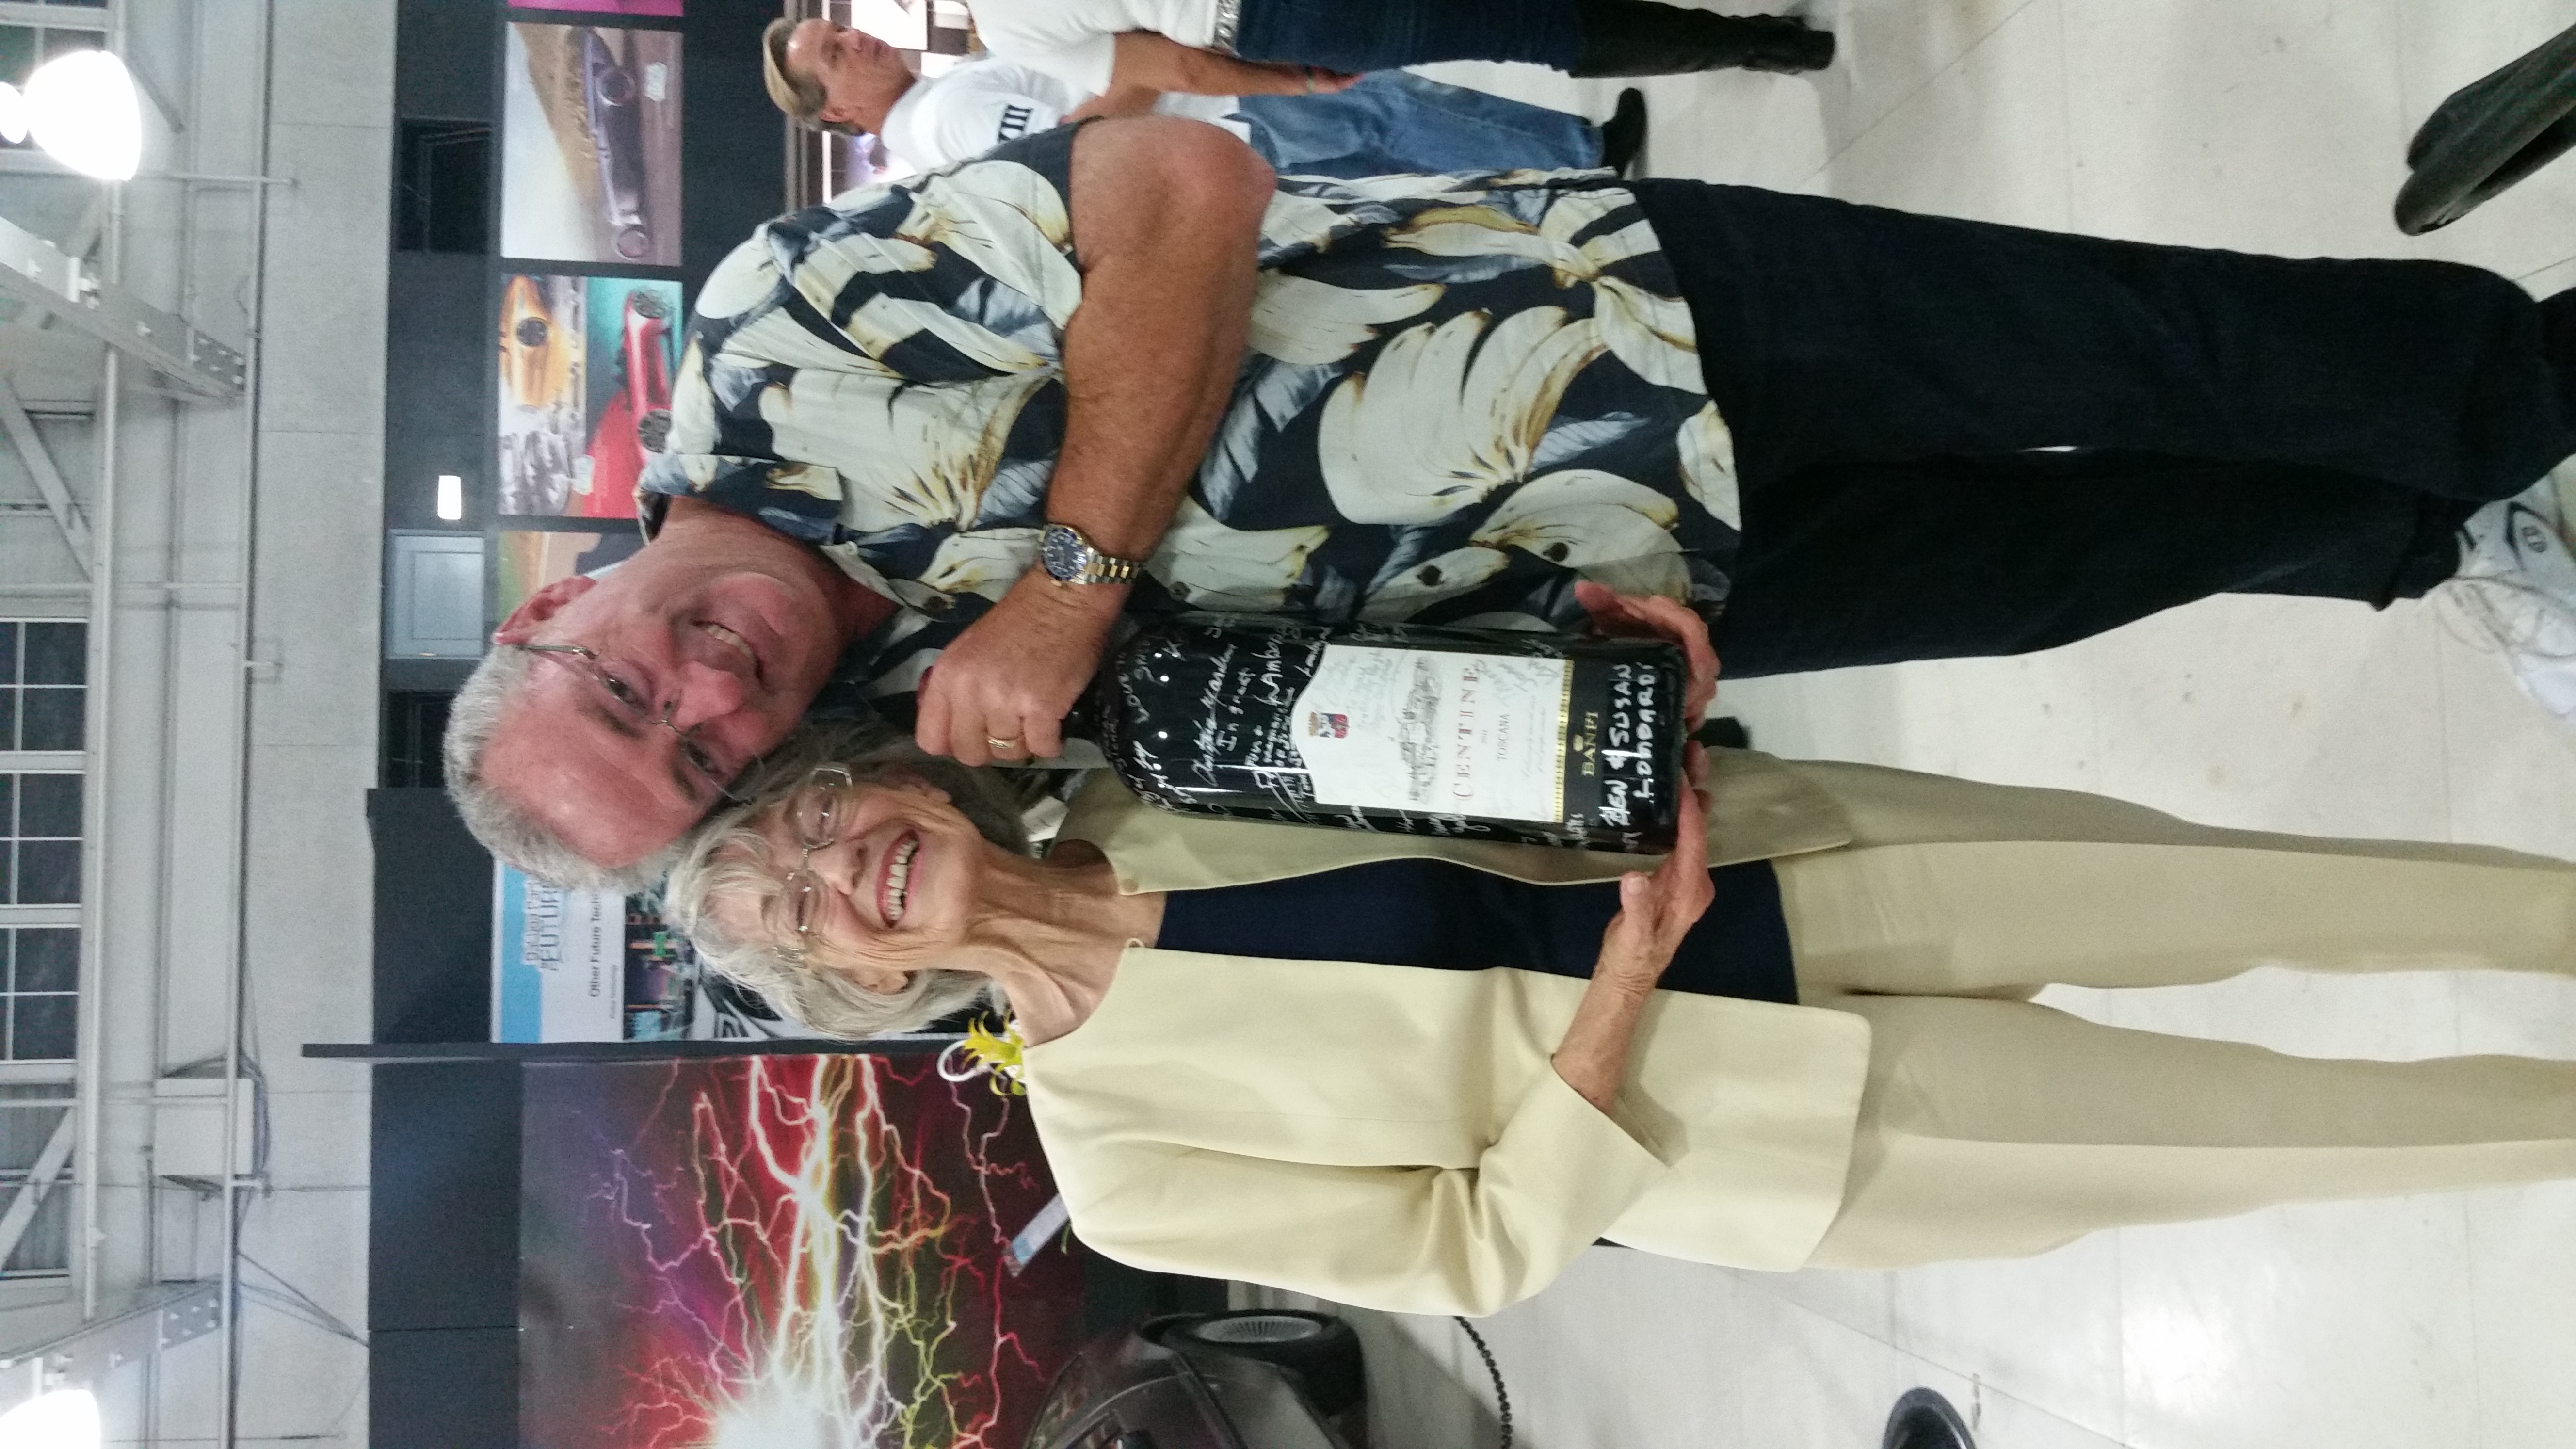 Scott Reiner with Joan an the Big, Signed Bottle of Wine